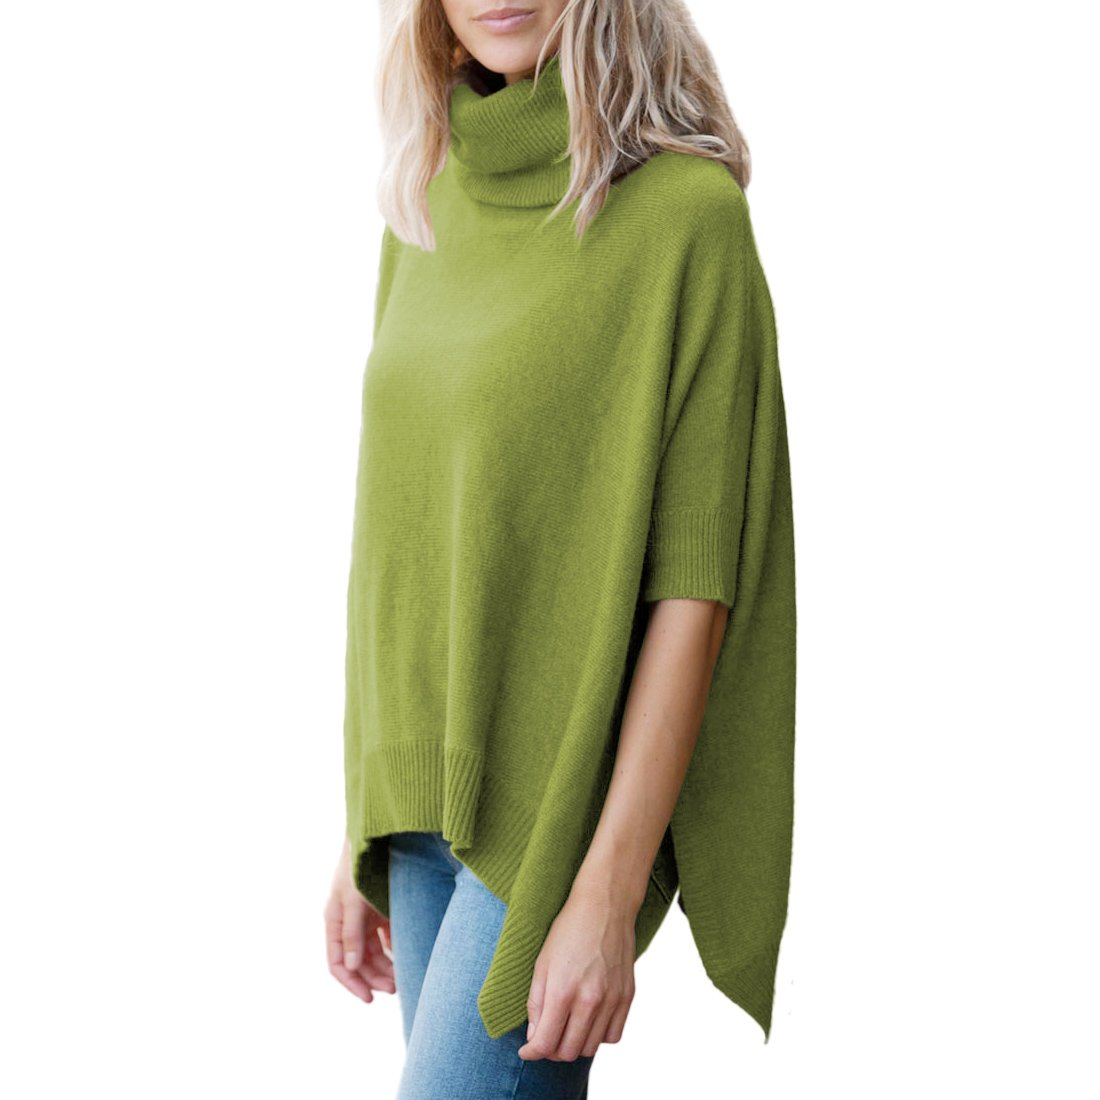 Parisbonbon Women's 100% Cashmere Pullover style Poncho Color Grass Green Size 0X